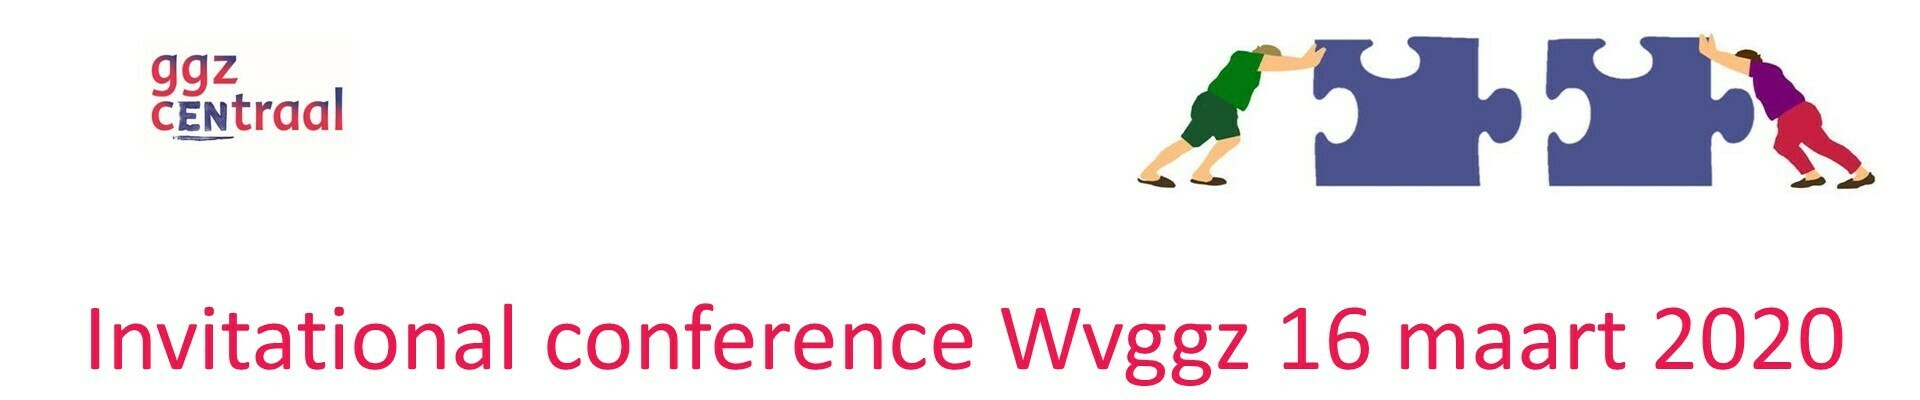 Invitational conference Wvggz 16 maart